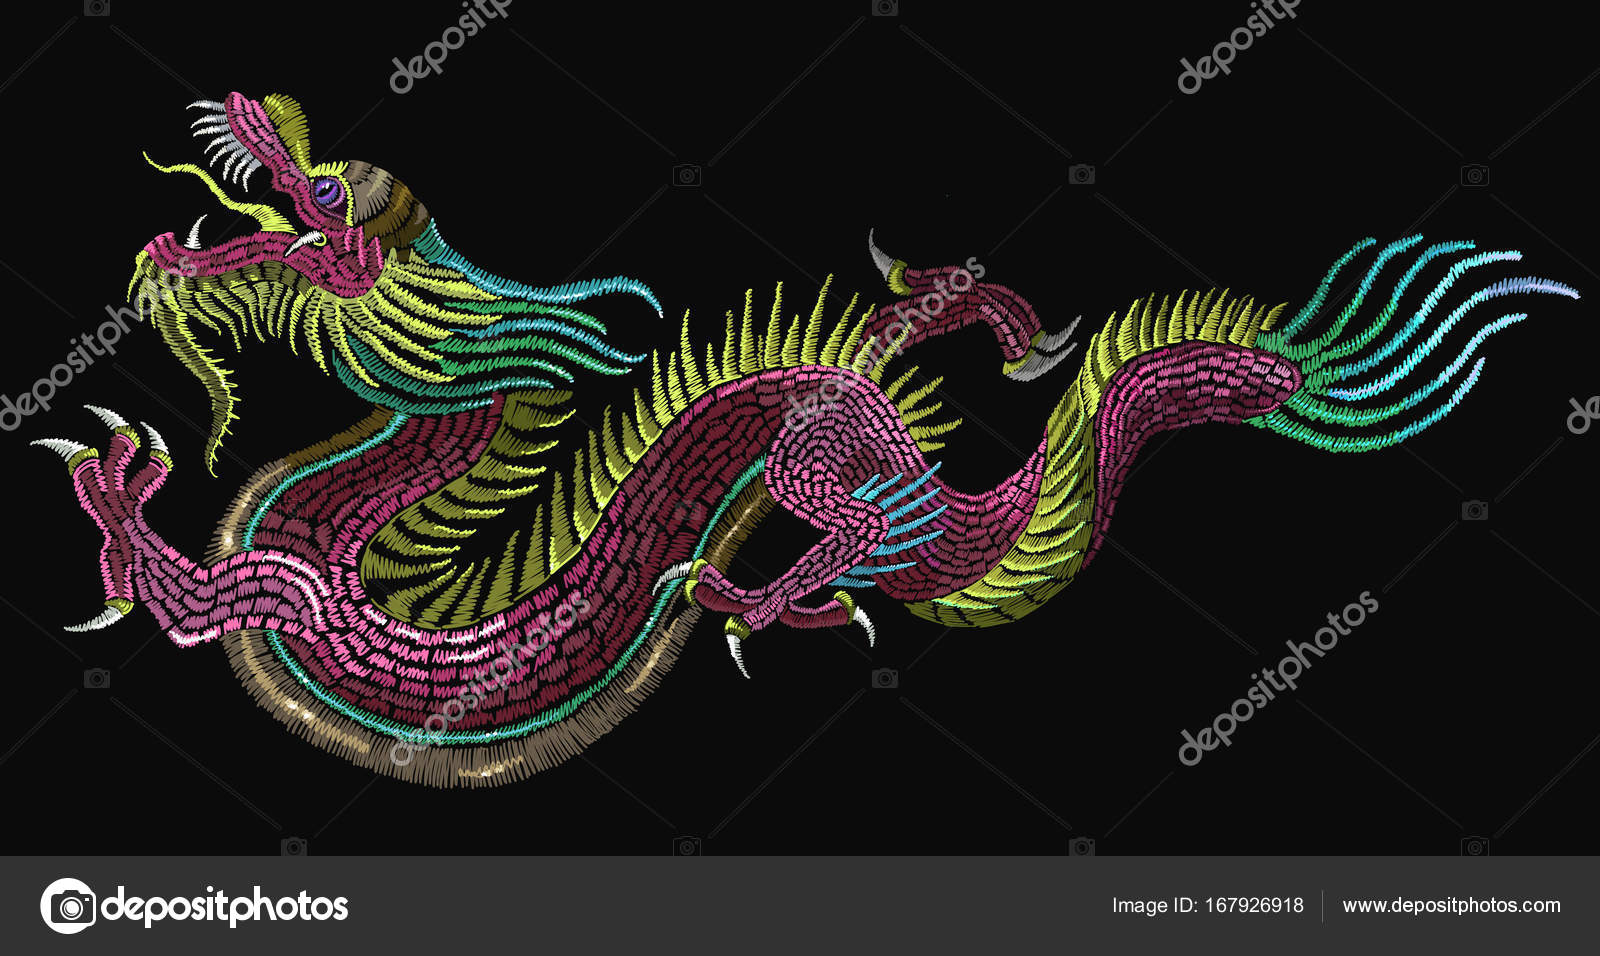 Fotos Dragones Chinos Dragones Chinos Bordados Dragones